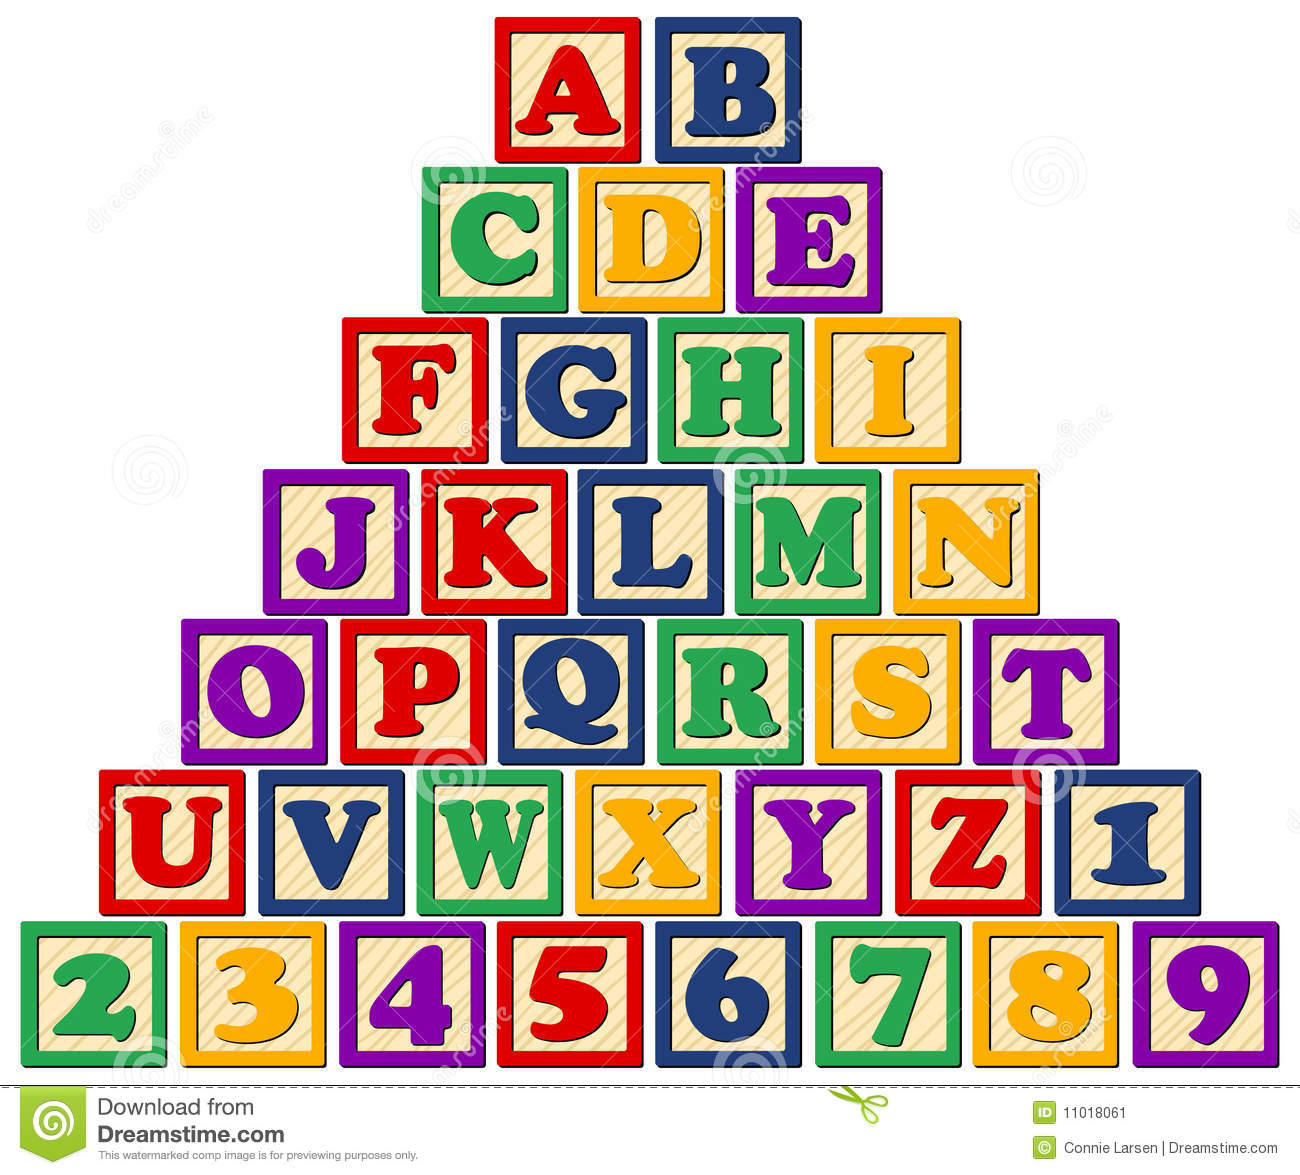 Alphabet clipart wood block printing png royalty free download 16 Wooden Block Letters Font Images - Wooden Alphabet Block Font ... png royalty free download